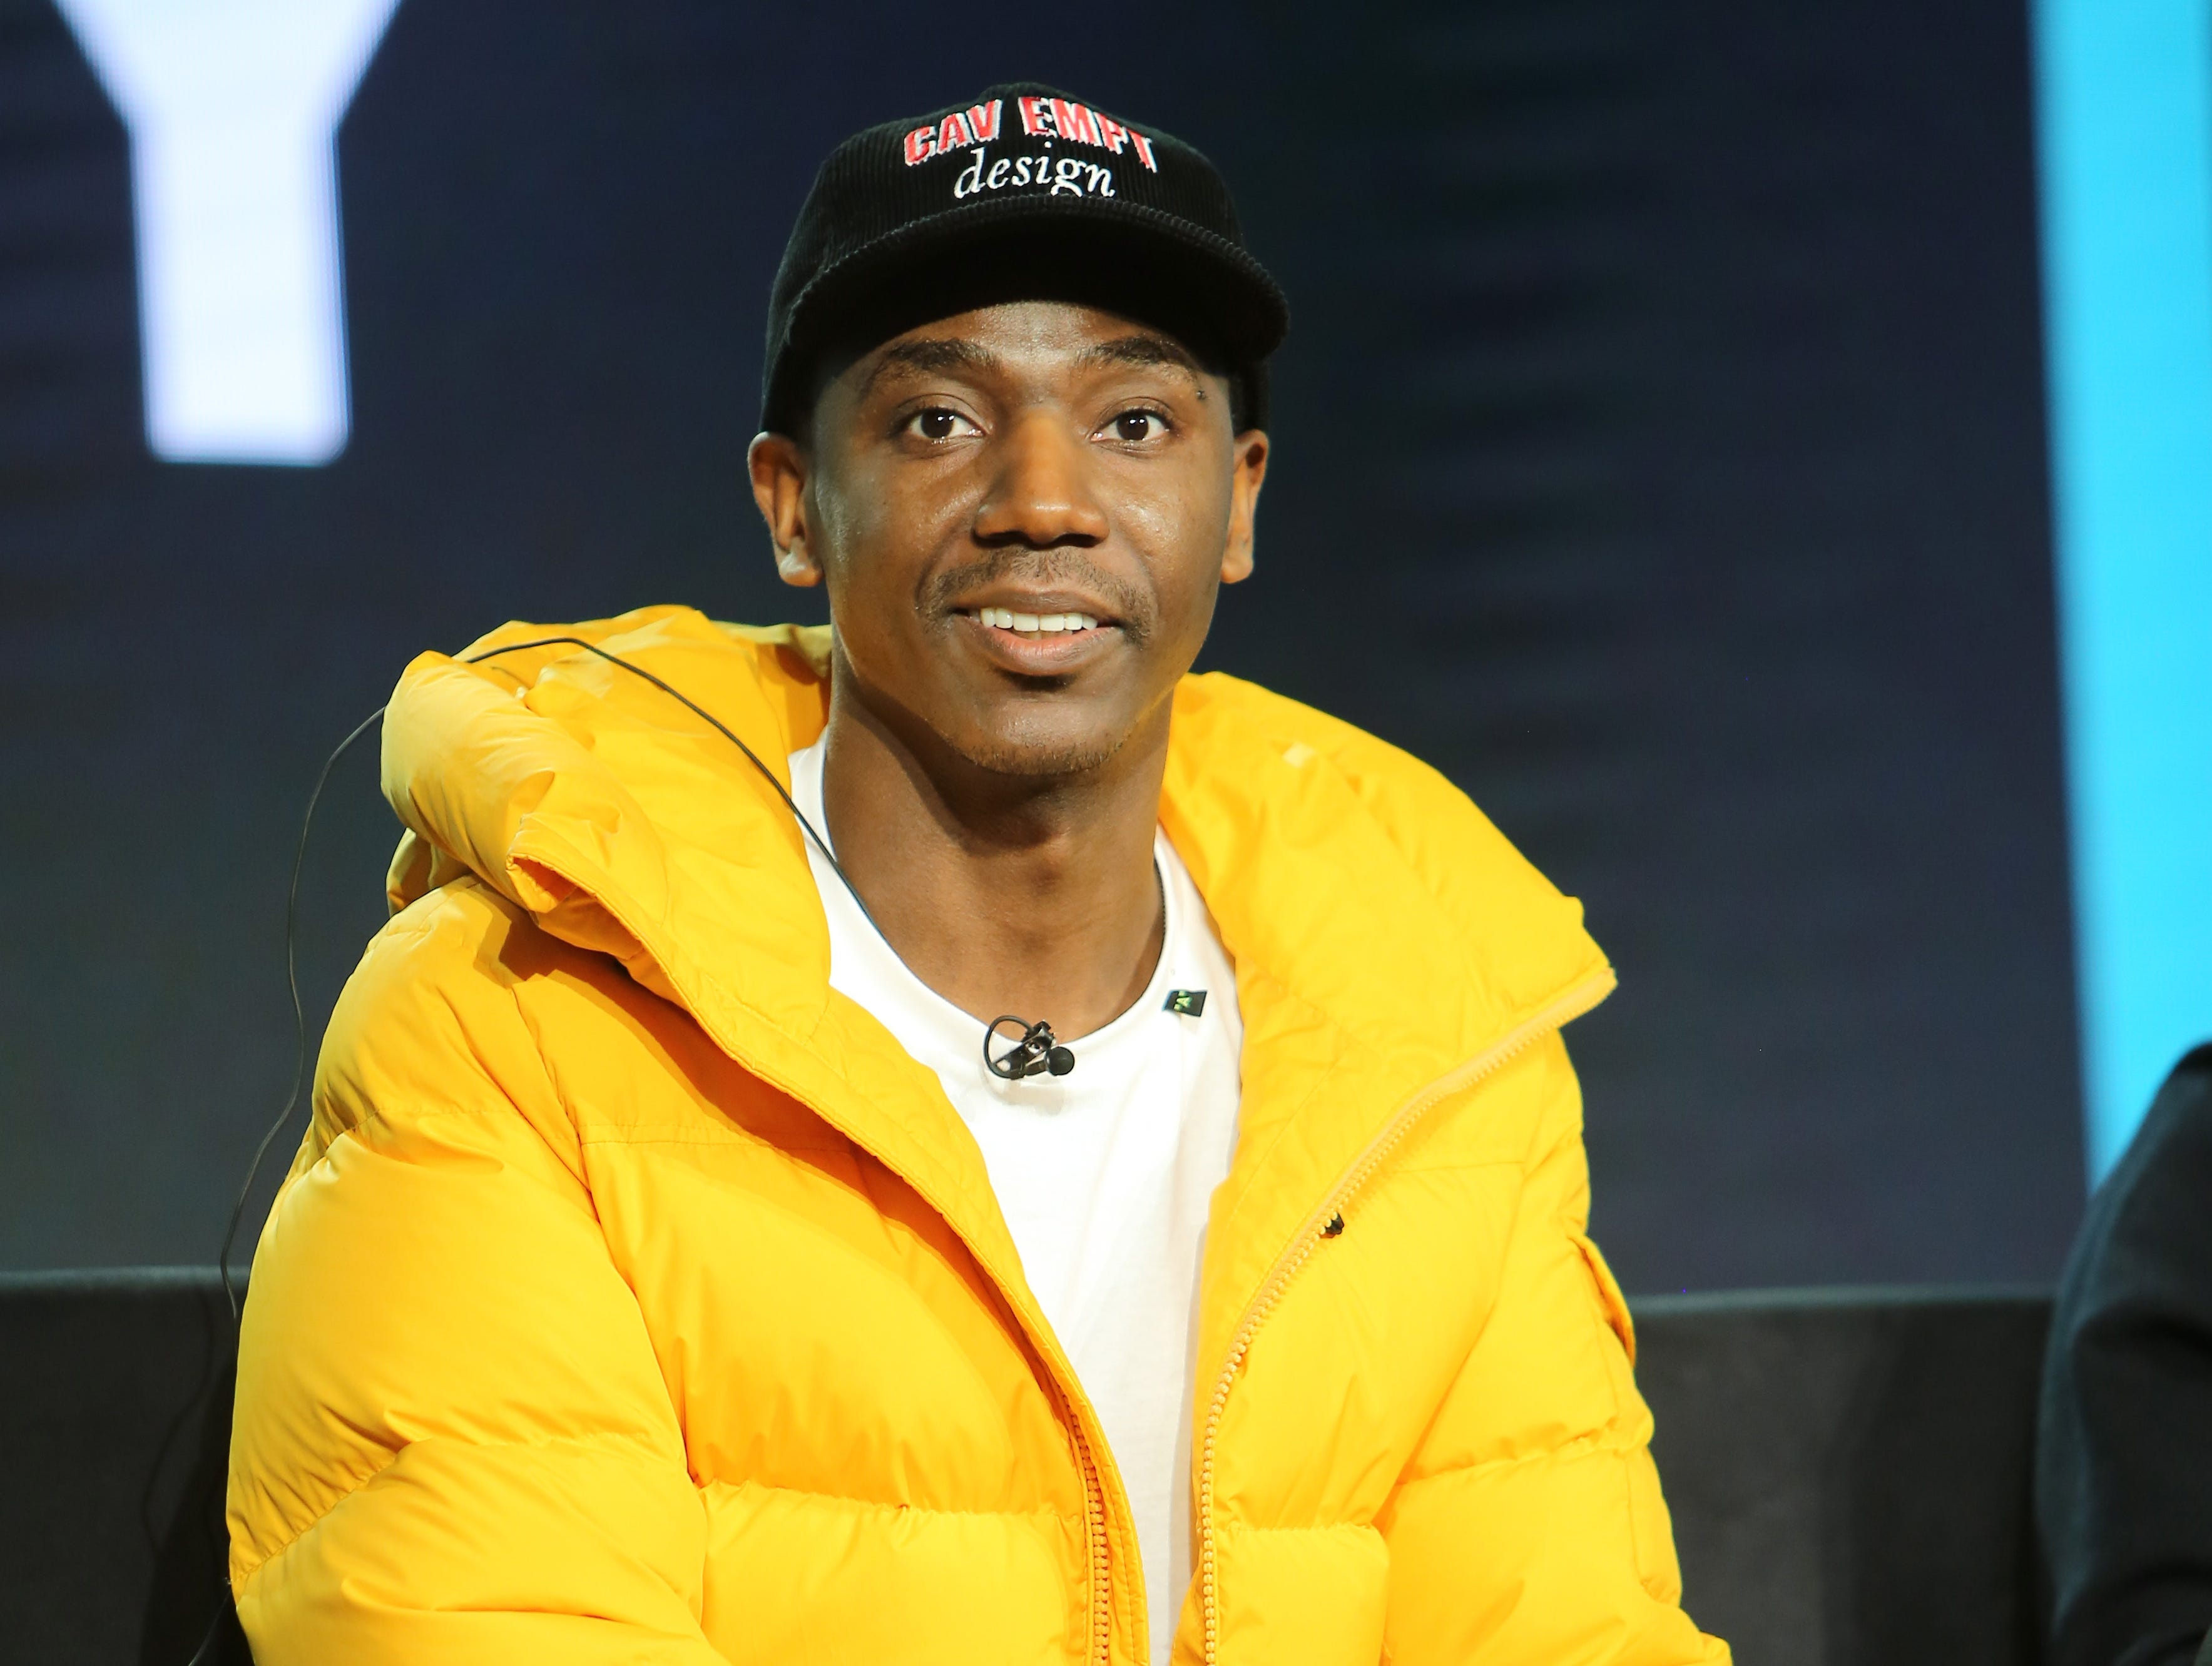 """Jerrod Carmichael takes a question about his new show """"Ramy"""" on Hulu."""